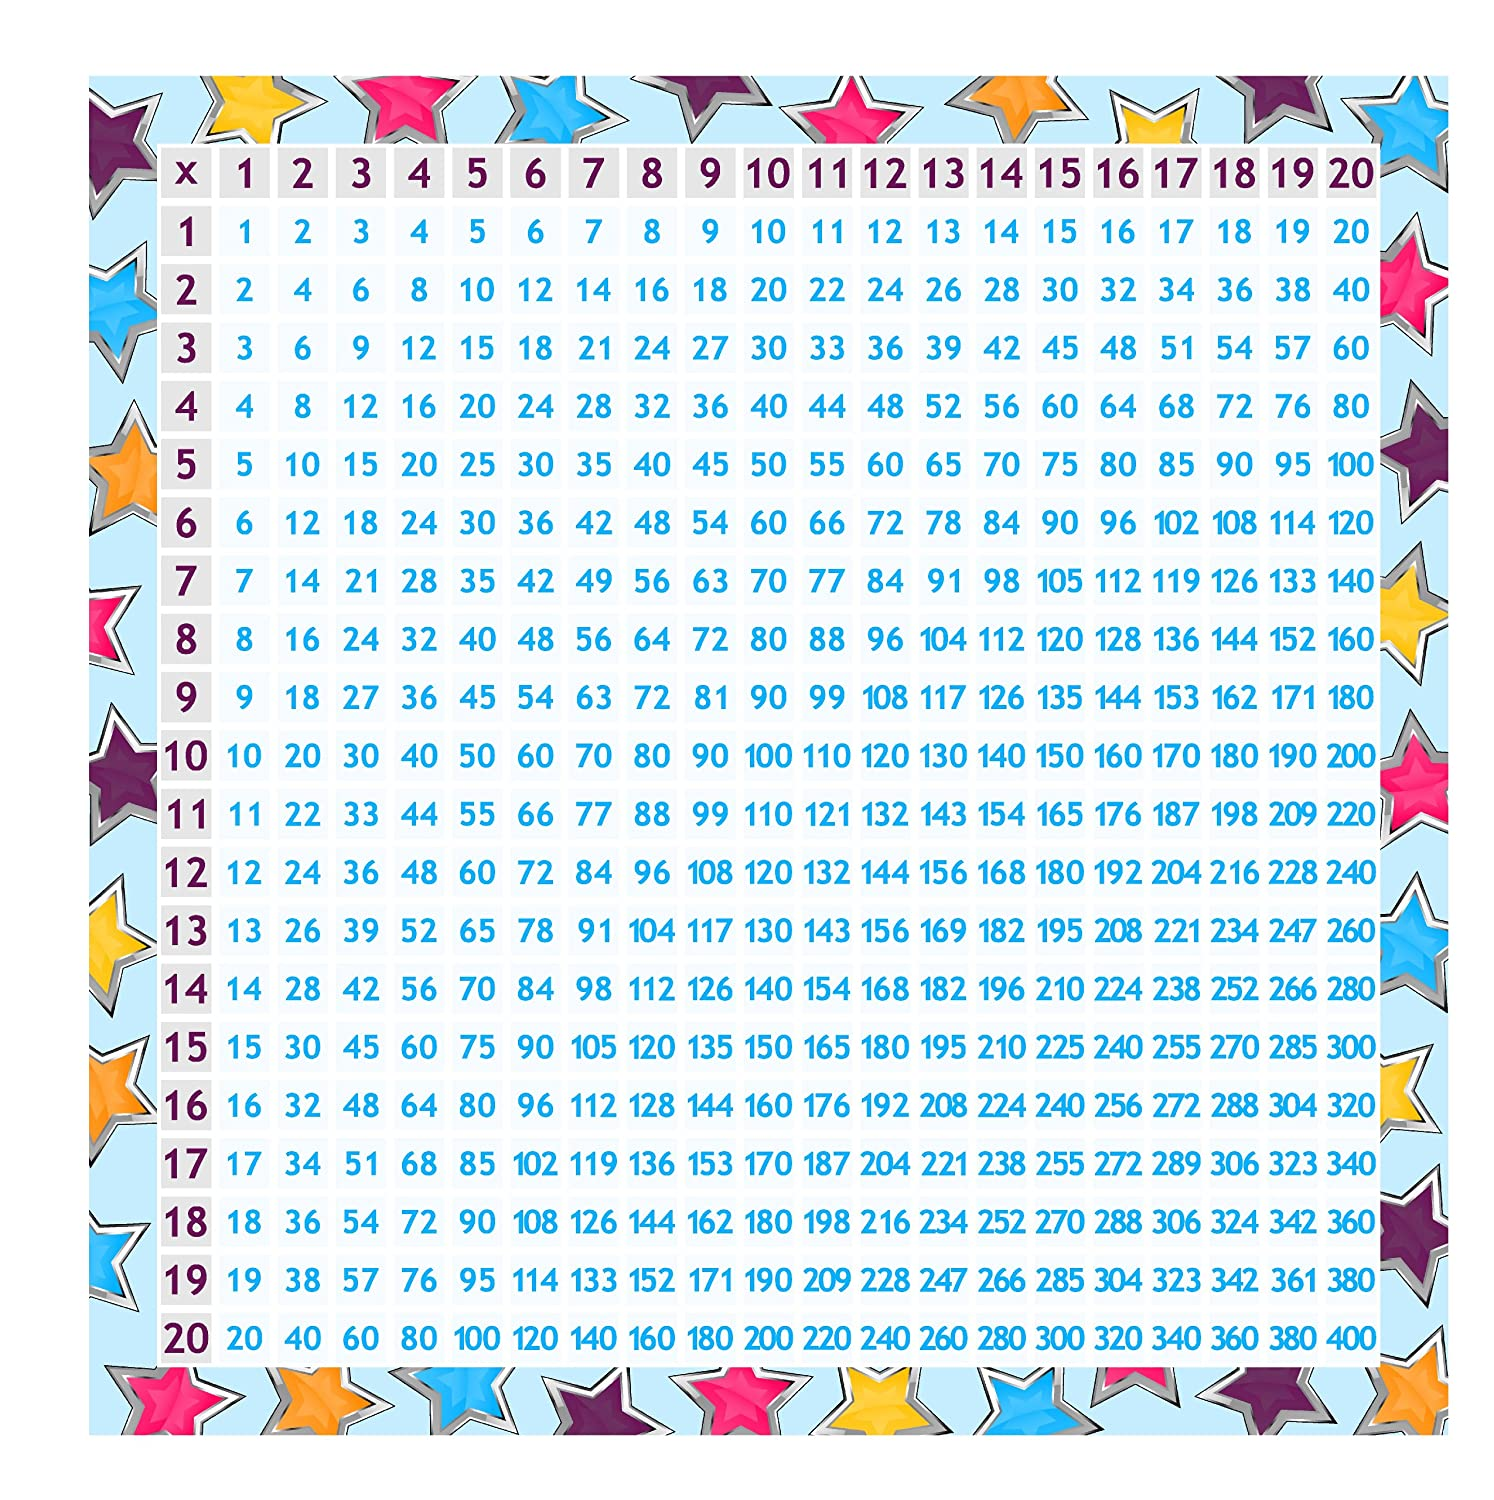 Multiplication table 60x60 gallery periodic table images tm02 childrens multiplication table sticker 60 x 60 cm amazon tm02 childrens multiplication table sticker 60 gamestrikefo Gallery